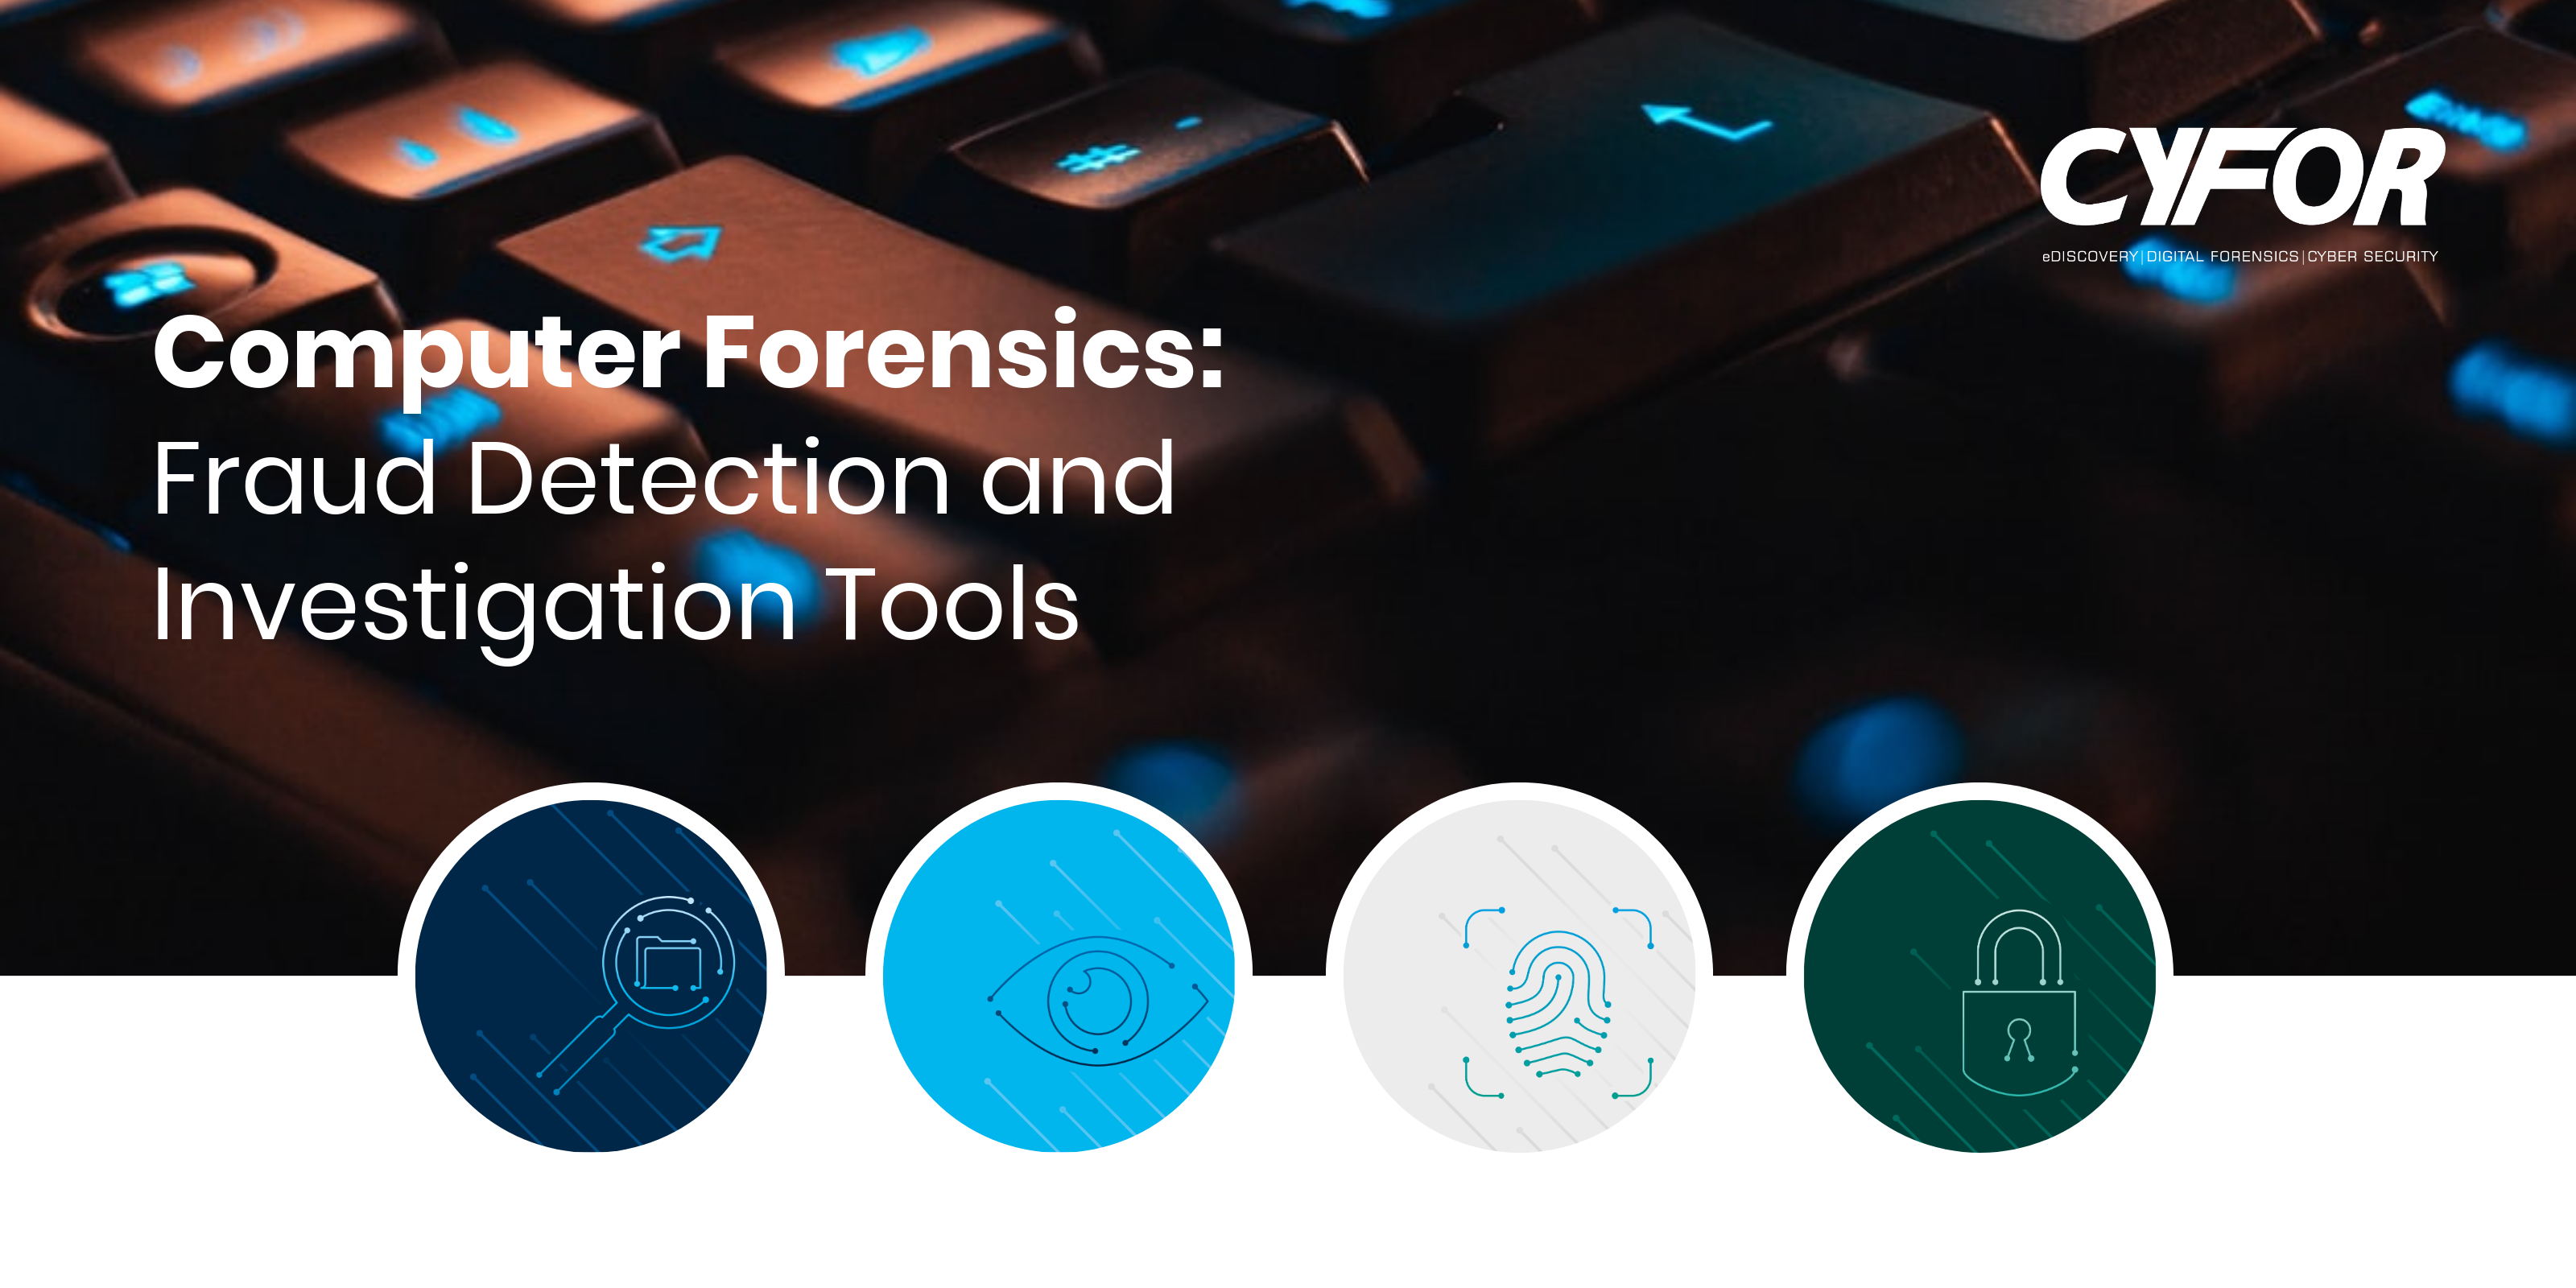 Fraud Detection And Investigation Tools Computer Forensics Cyfor